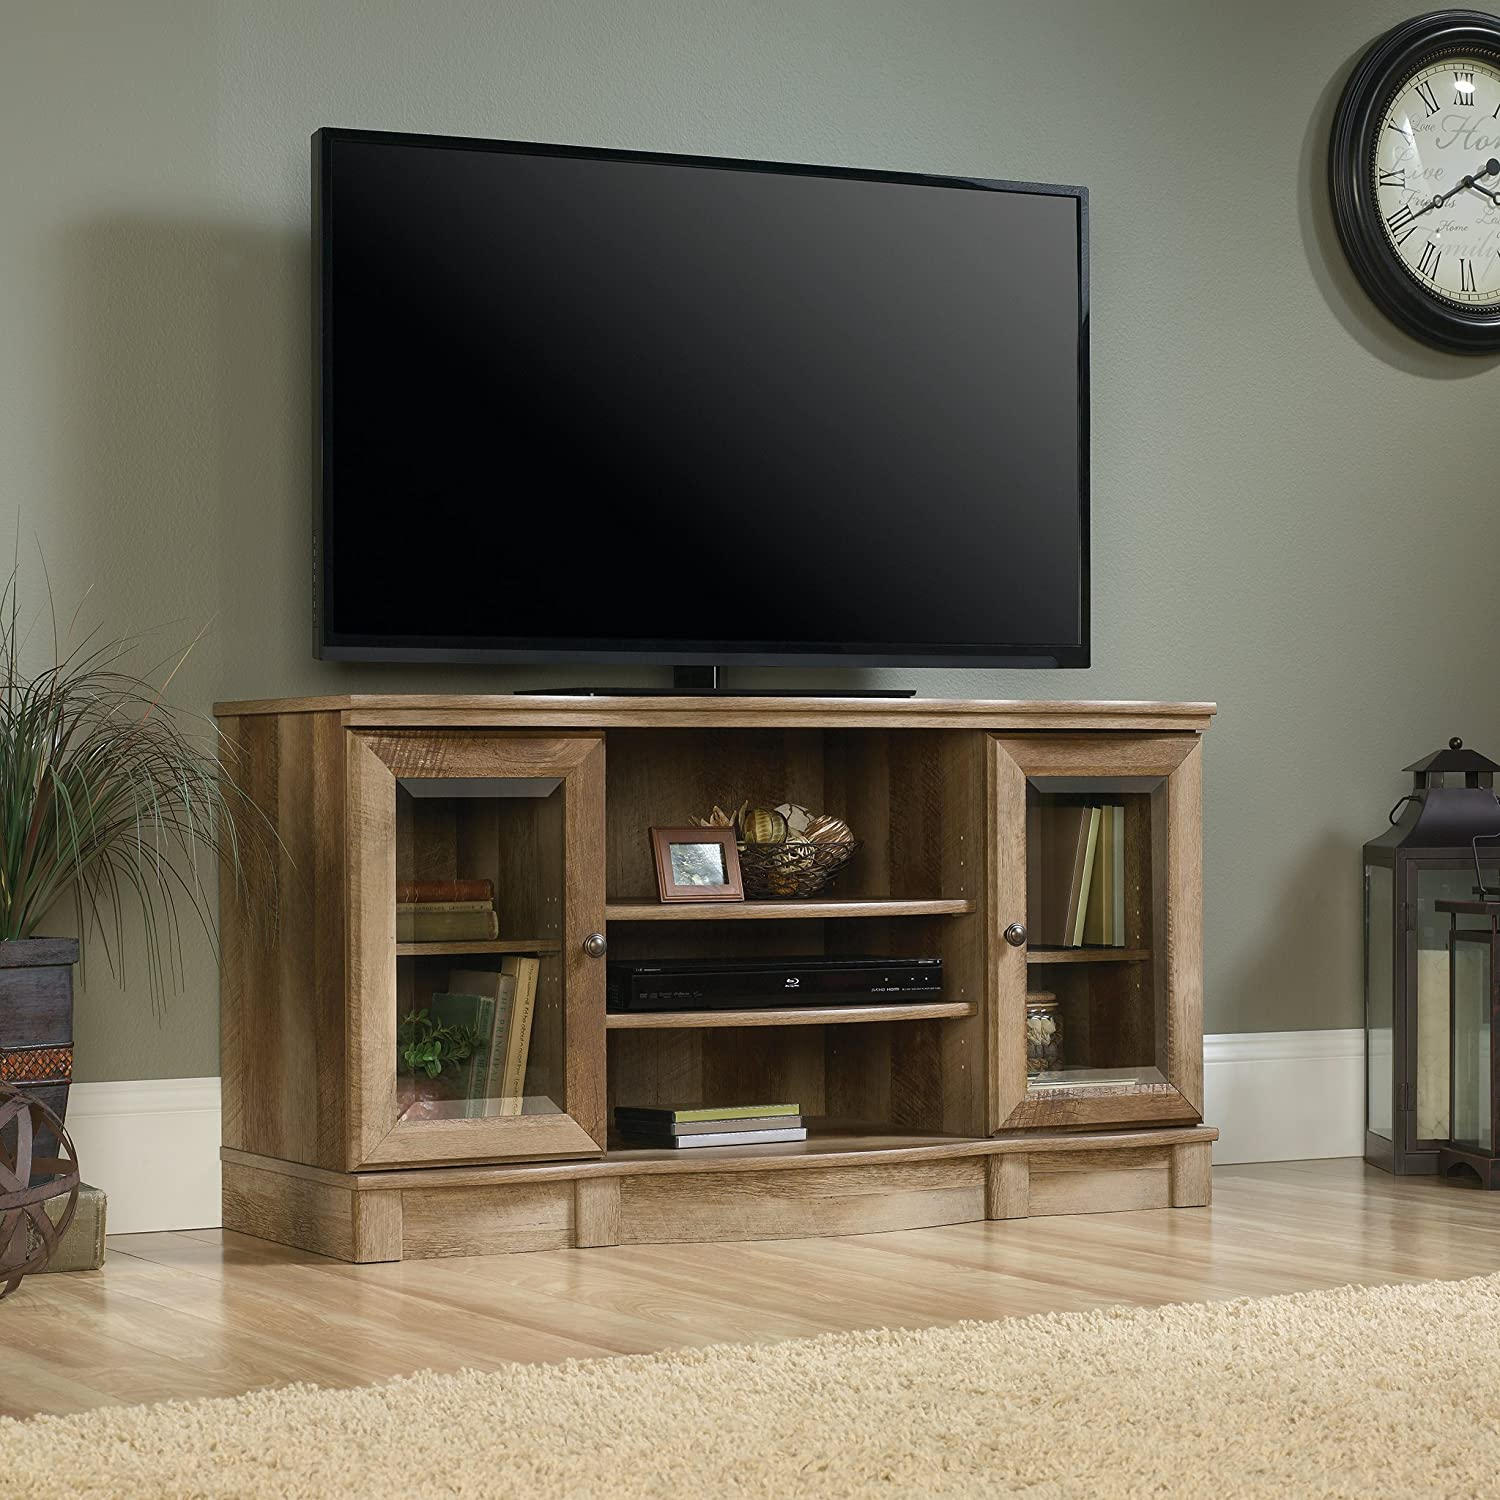 The 5 Best TV Stands In 2021: Reviews & Buying Guide 8